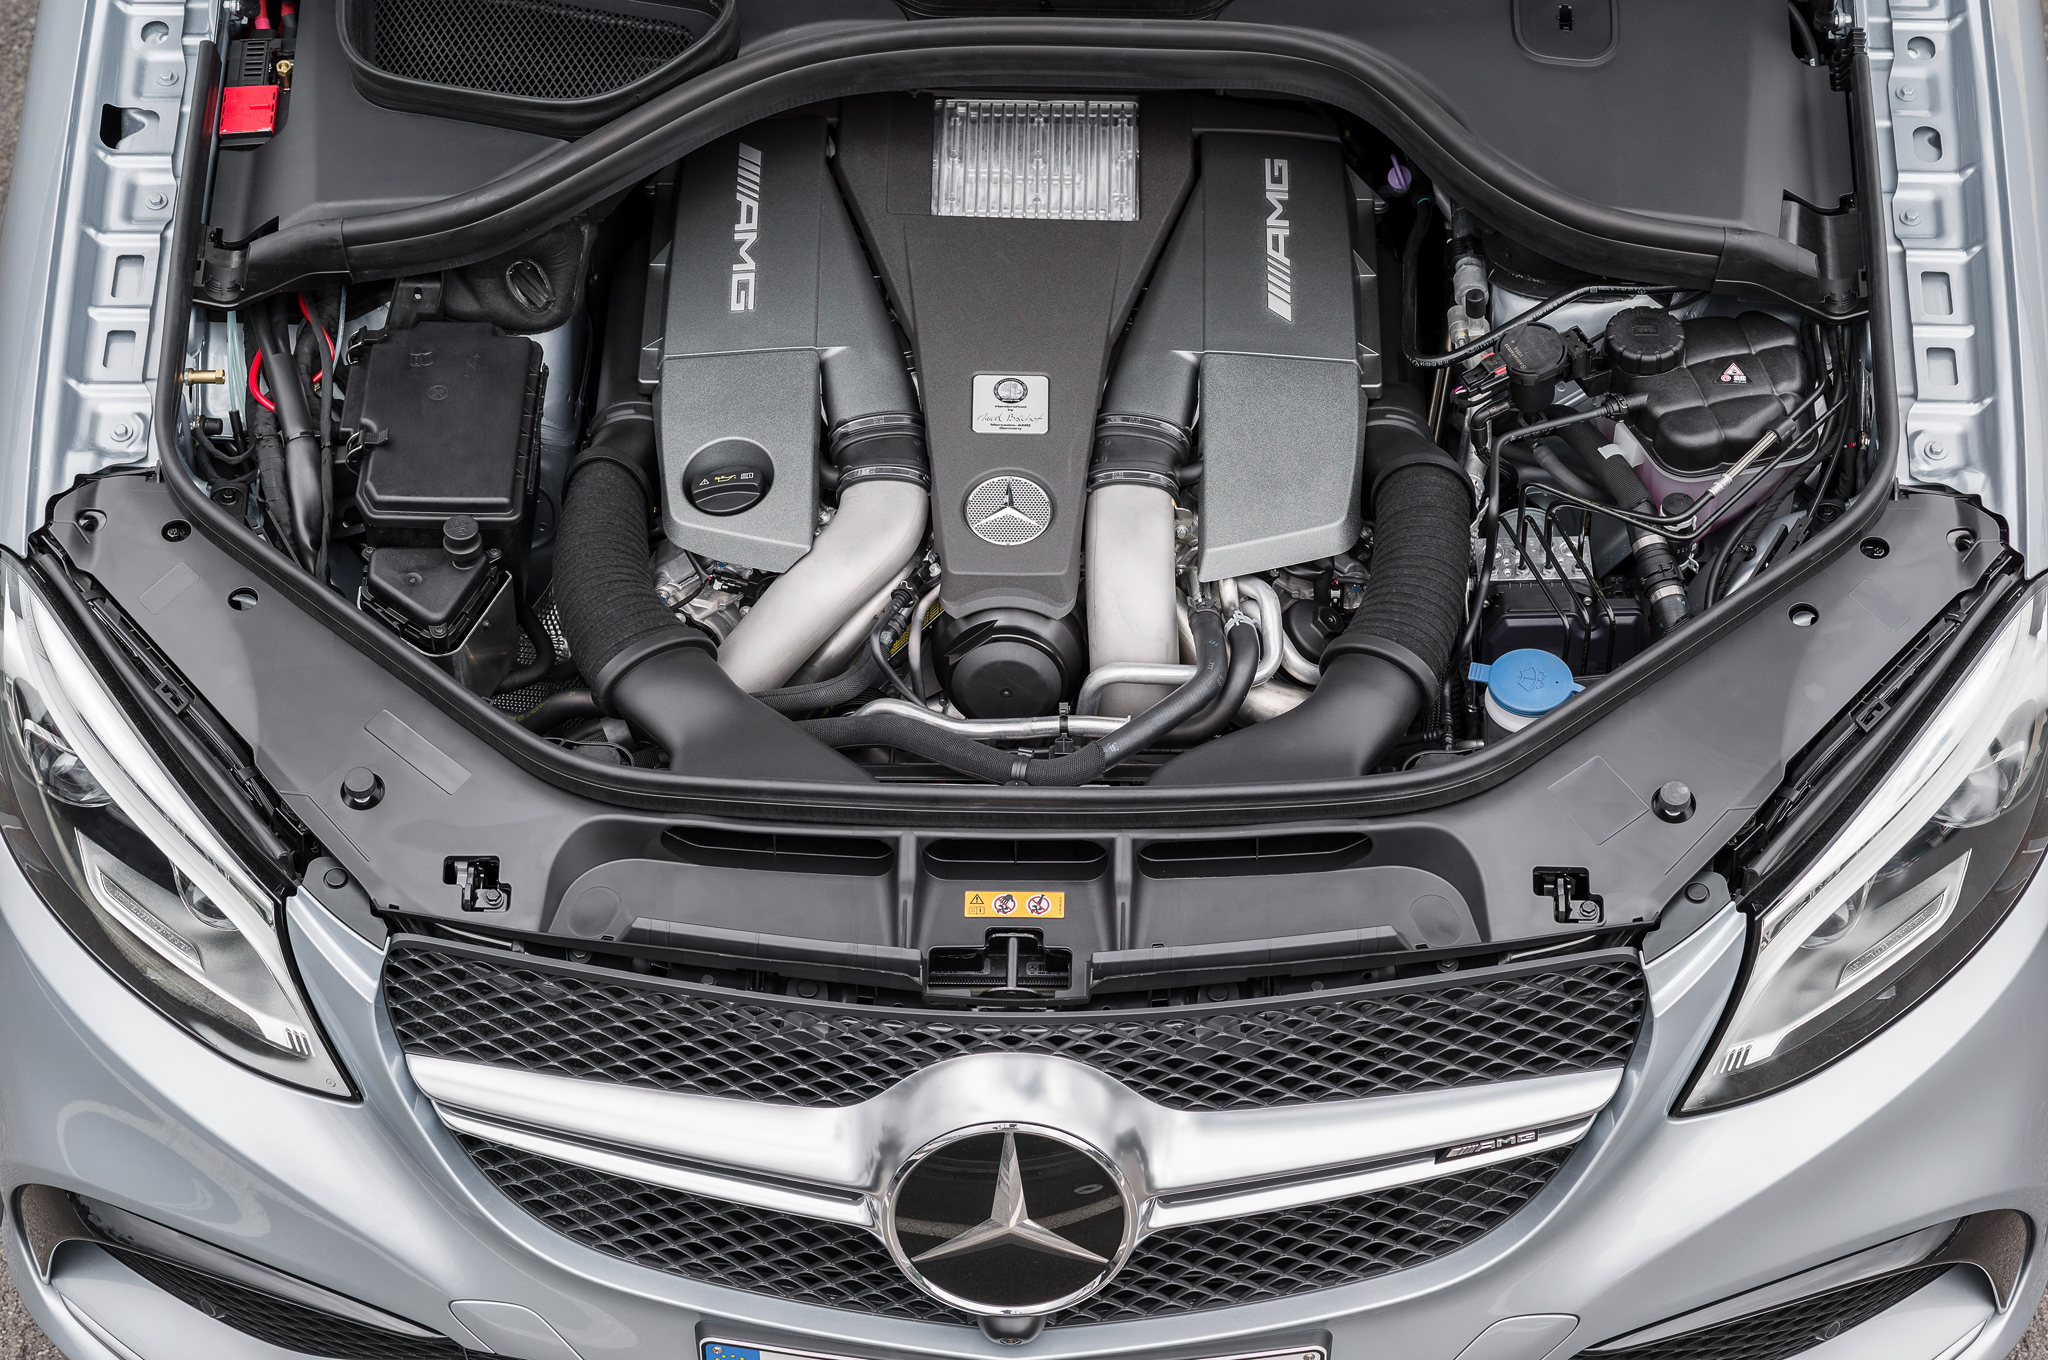 2016 Mercedes Benz Amg Gle63s 4matic Coupe Engine (Photo 1 of 8)